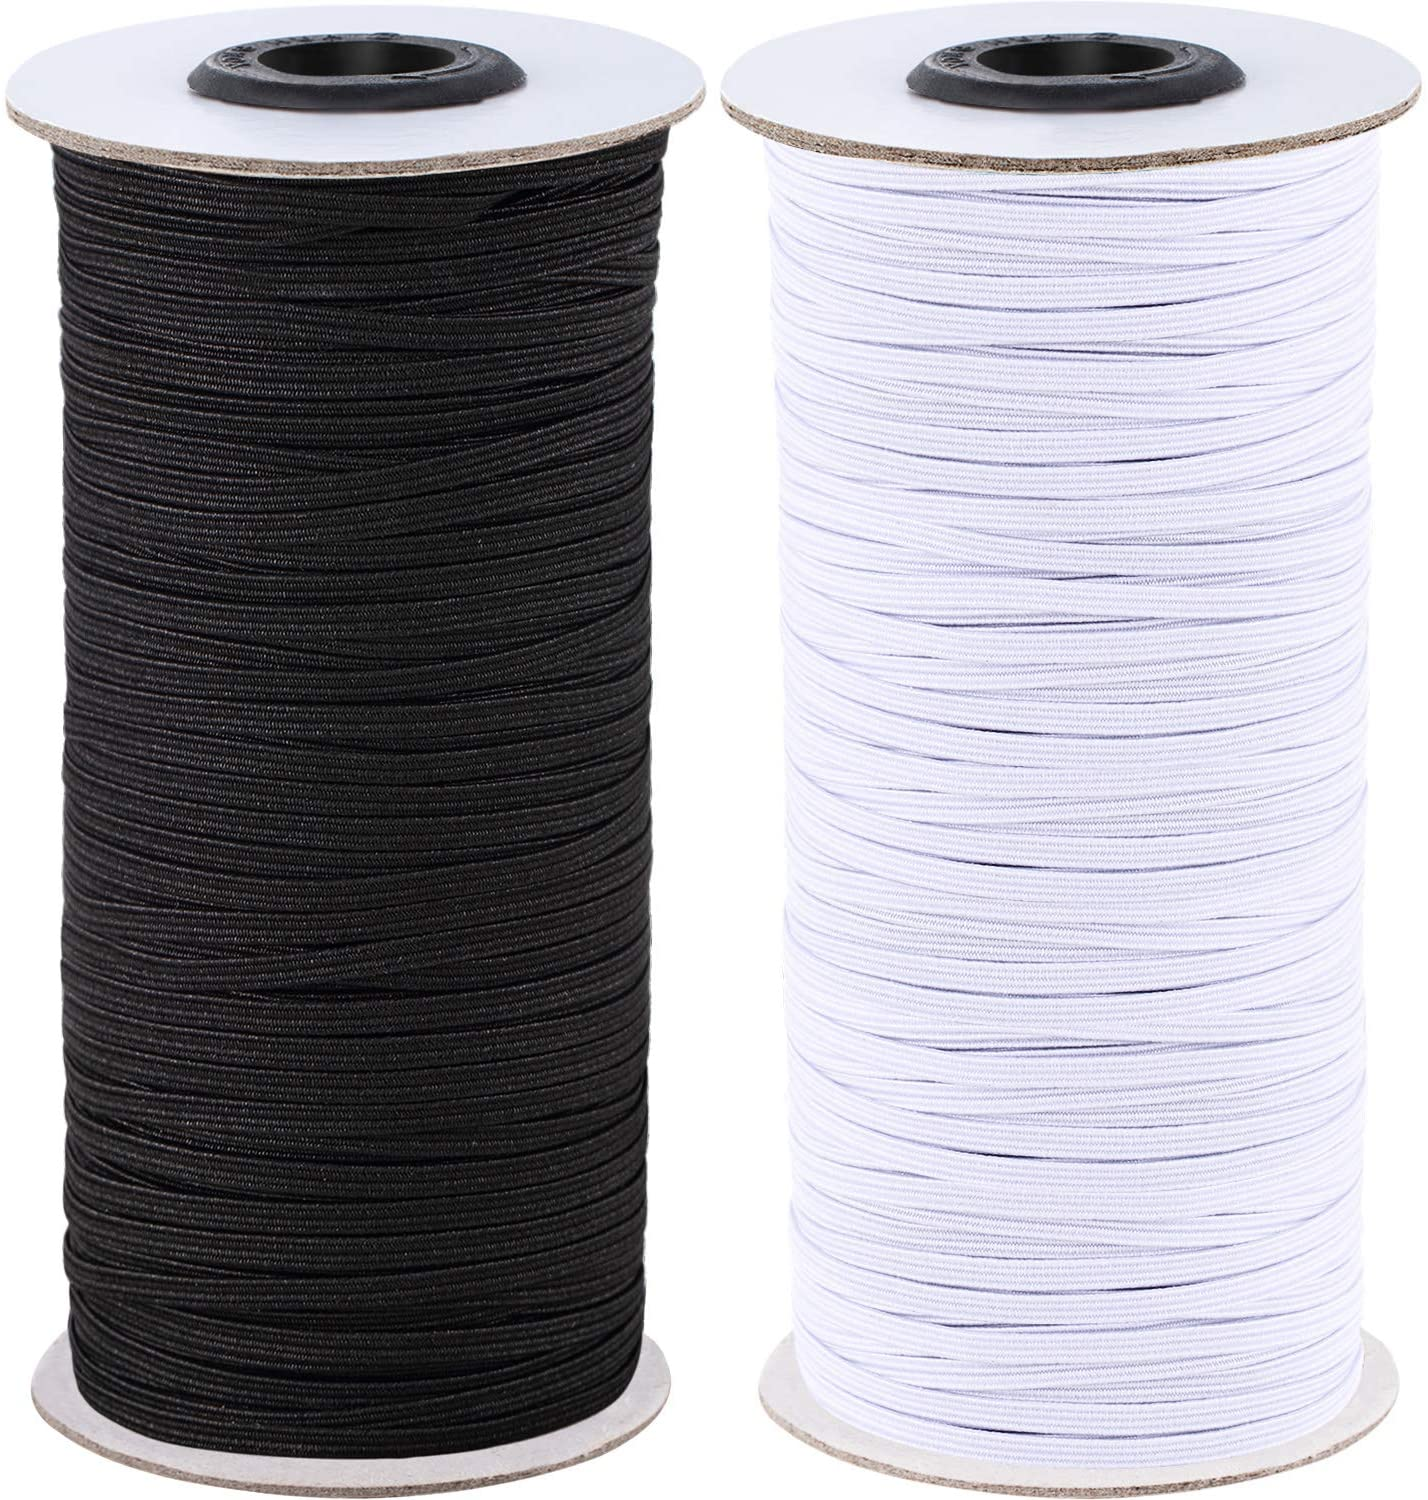 2 Rolls 1/8 Inch Wide 100 Yard Long Elastic Bands Heavy Stretch Strap Cord Elasticity Knit Flat Elastic Band for Sewing Cuffs, Pockets and DIY Crafting, Black and White